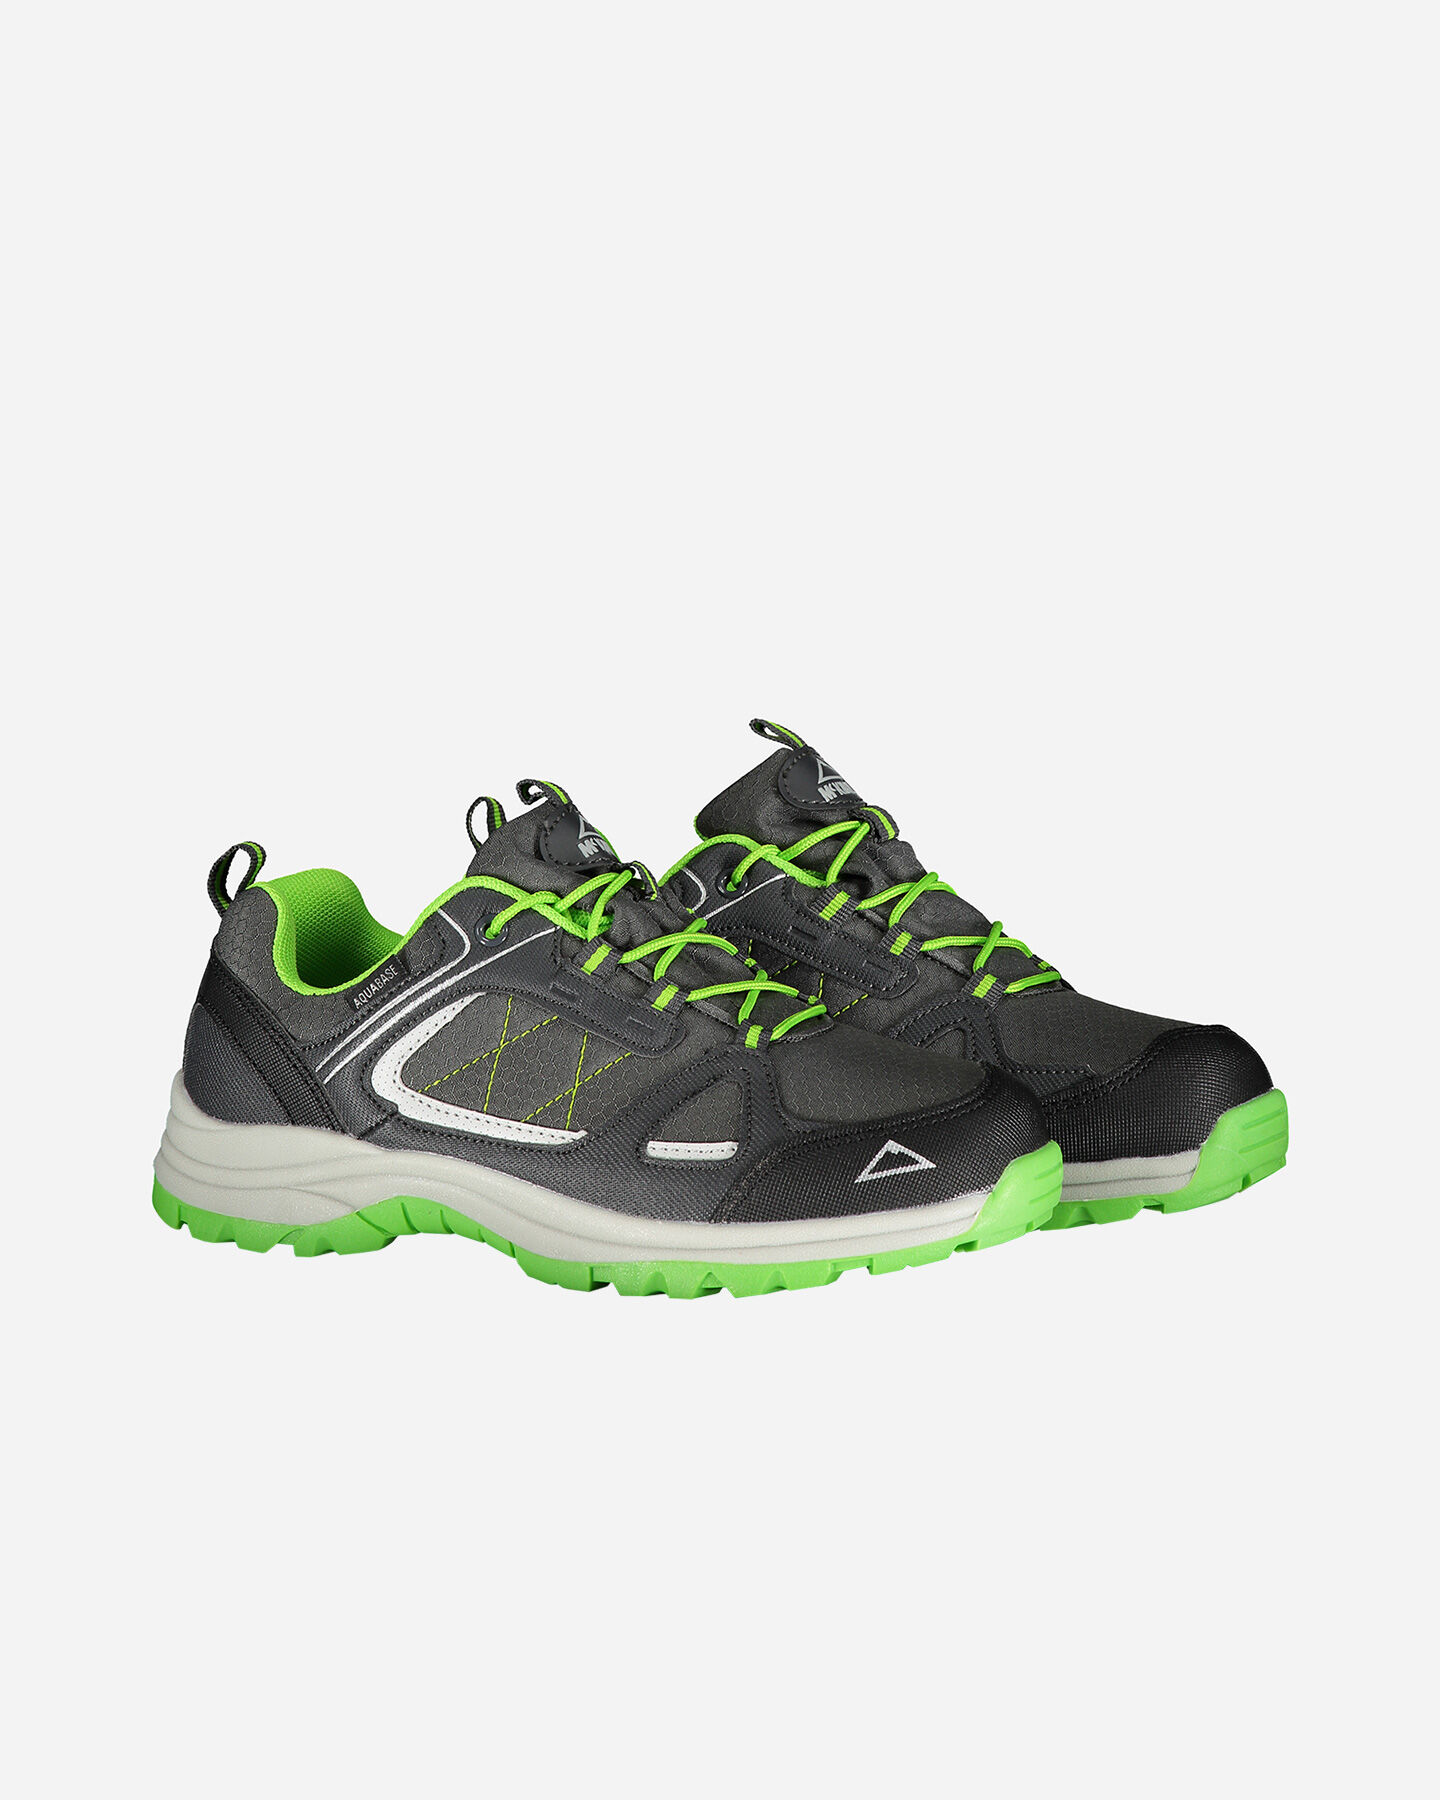 Scarpe trail MCKINLEY MAINE LOW AQB JR S5158799 scatto 1